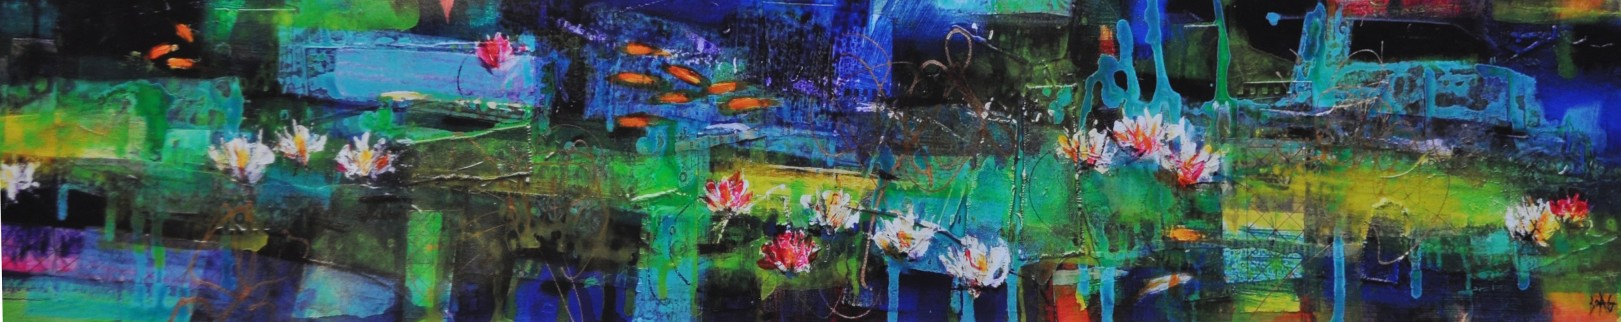 Frances Boag_Giverny II.203x1193mm